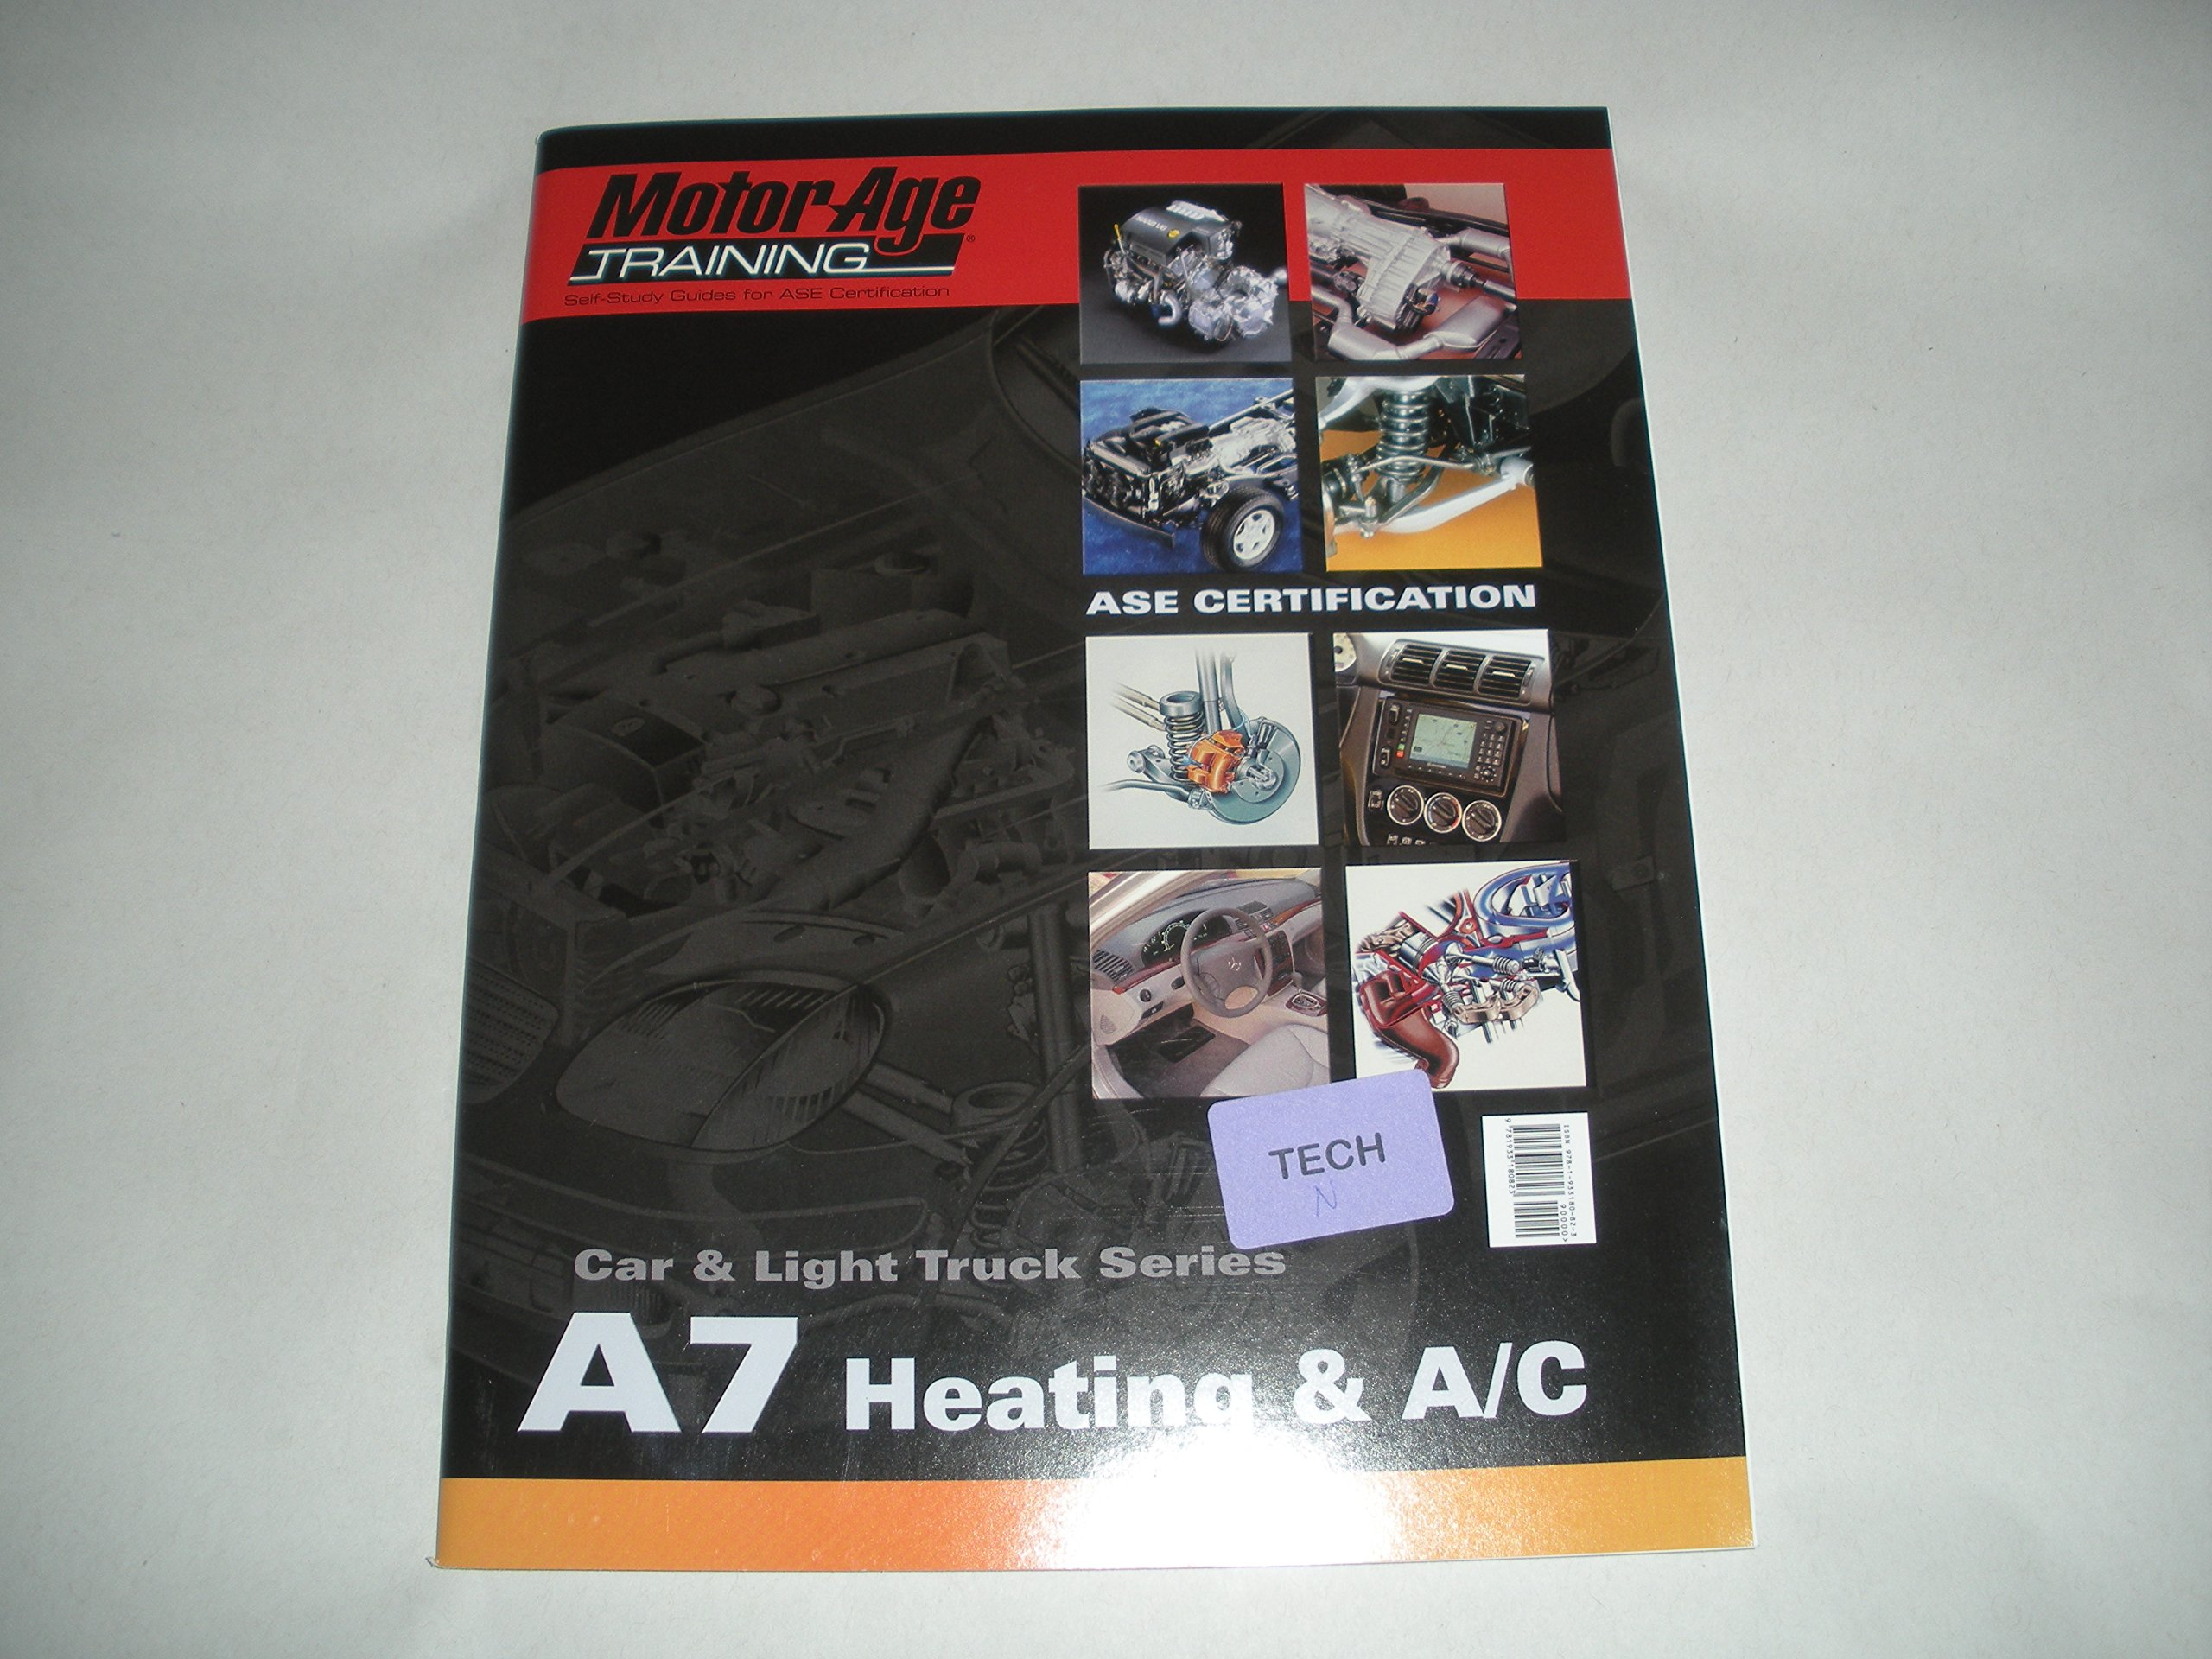 A7 Heating Ac Motor Age Training Self Study Guide For Ase